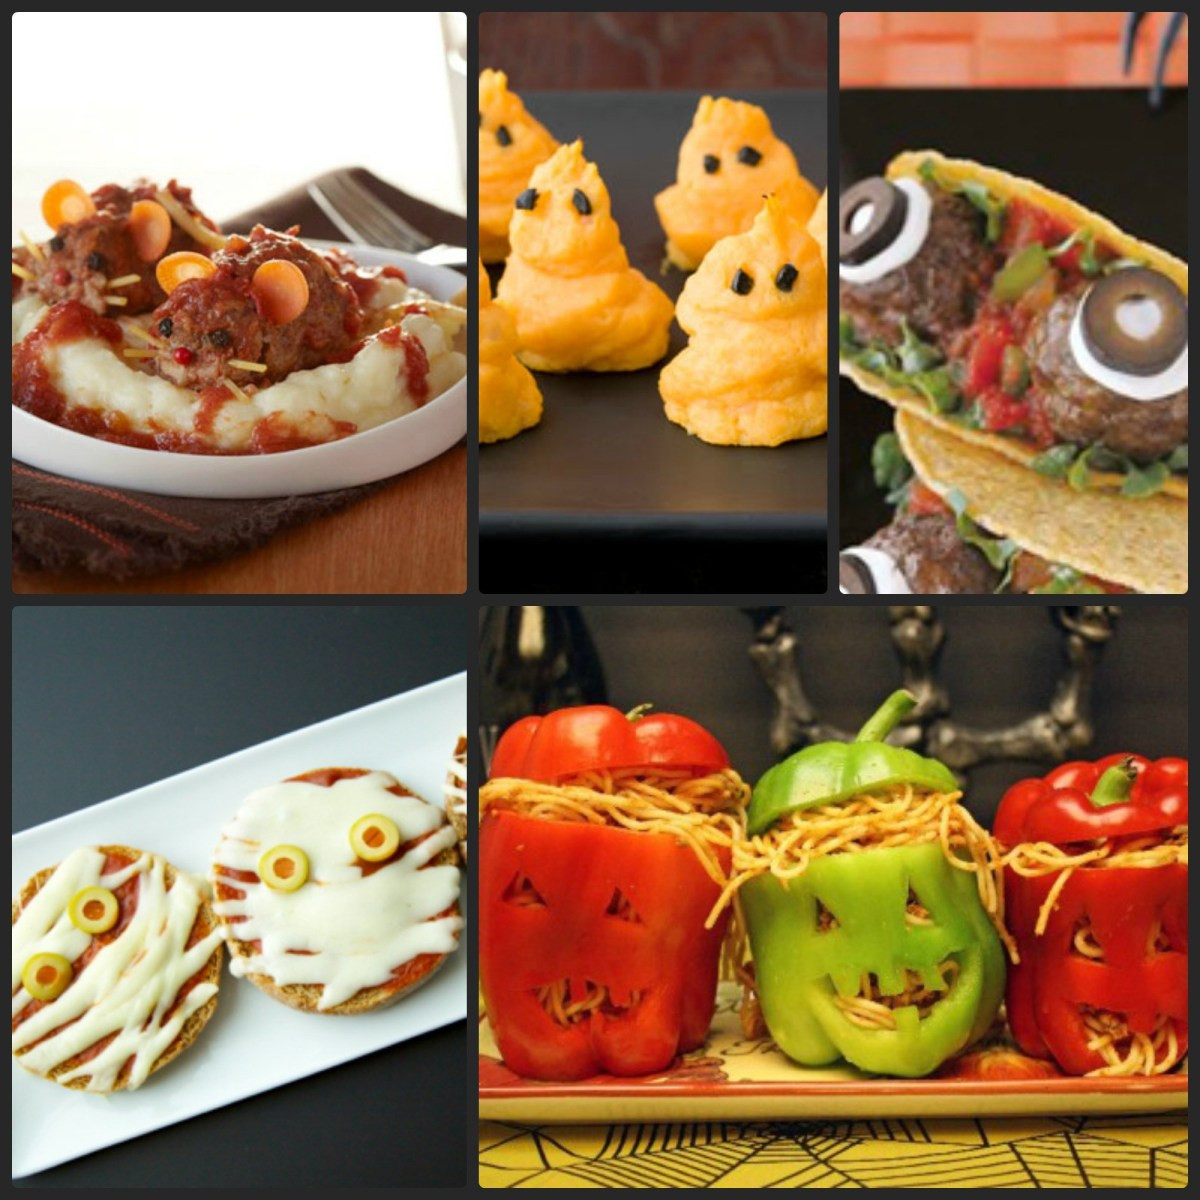 Spooky Halloween Dinners  Spooky Halloween Dinners — Today s Every Mom